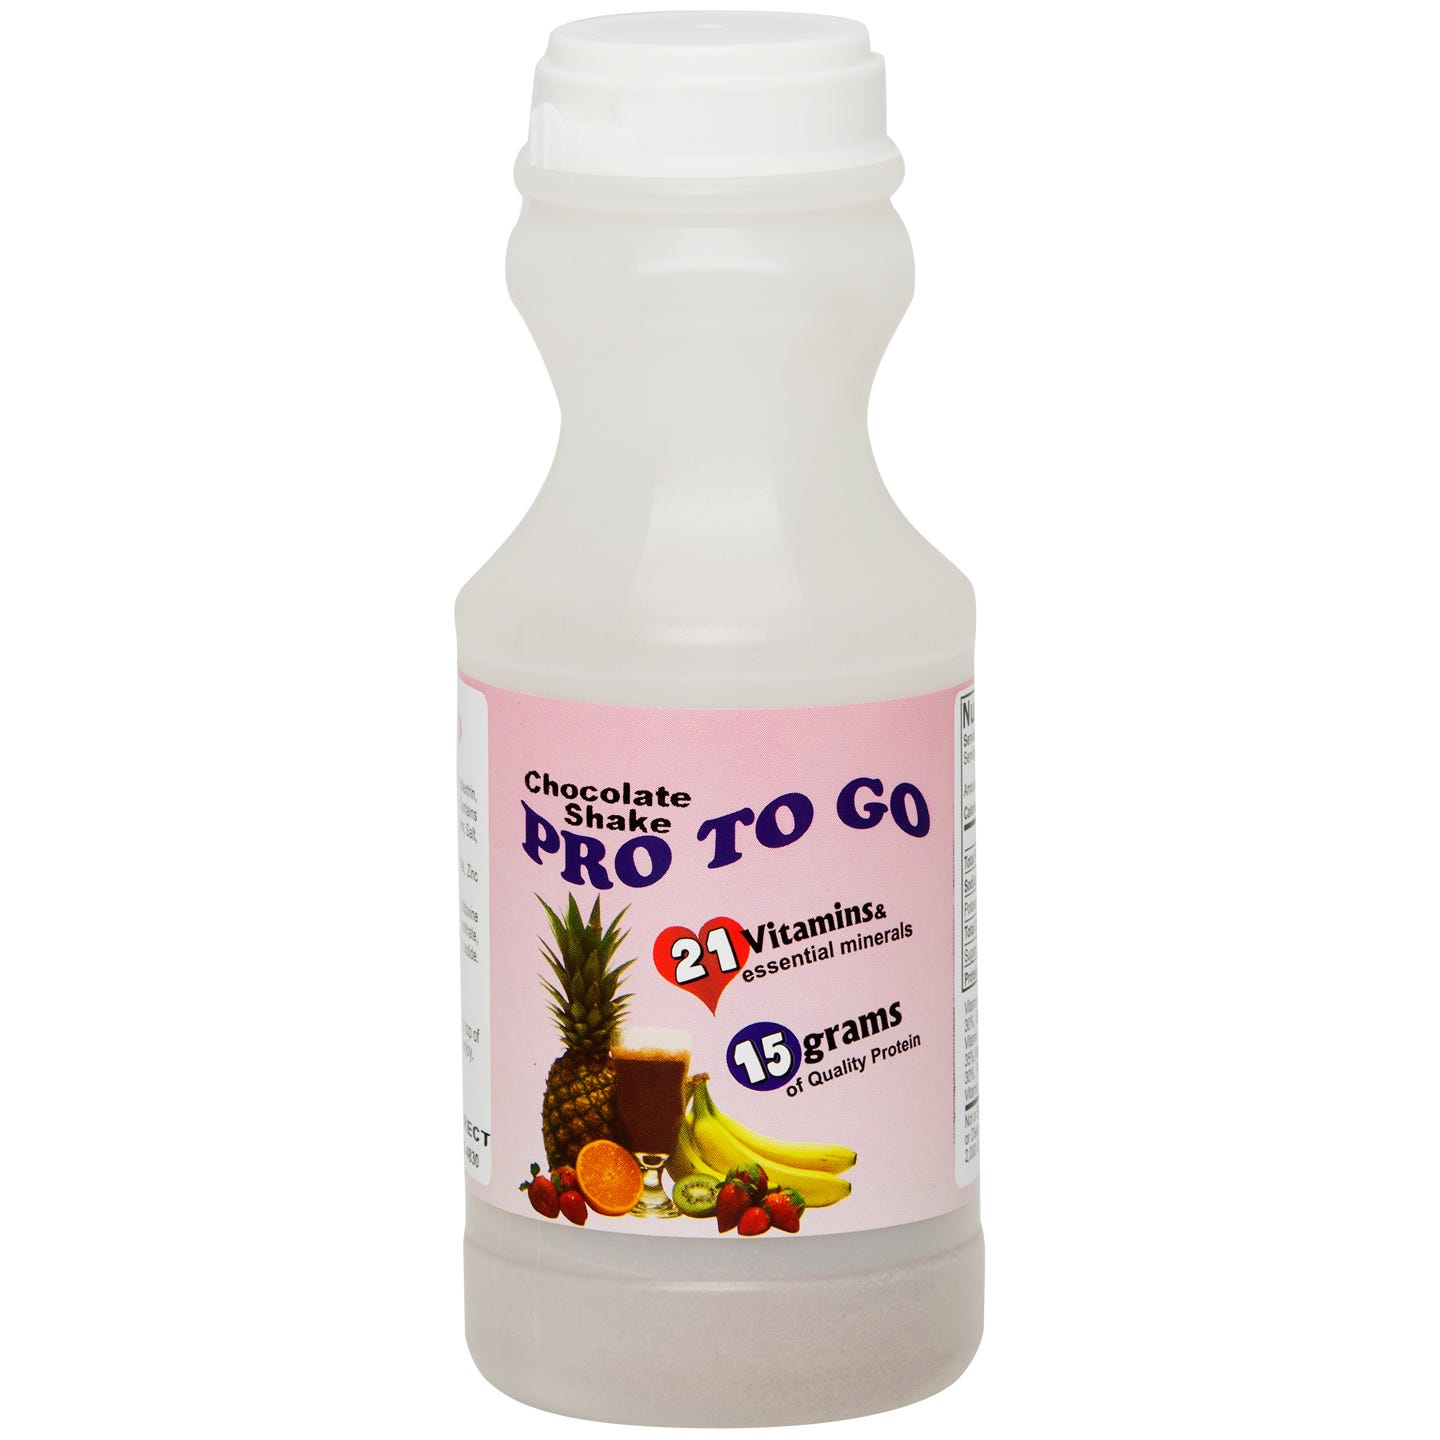 Pro To Go Protein Diet Drinks - Chocolate Shake